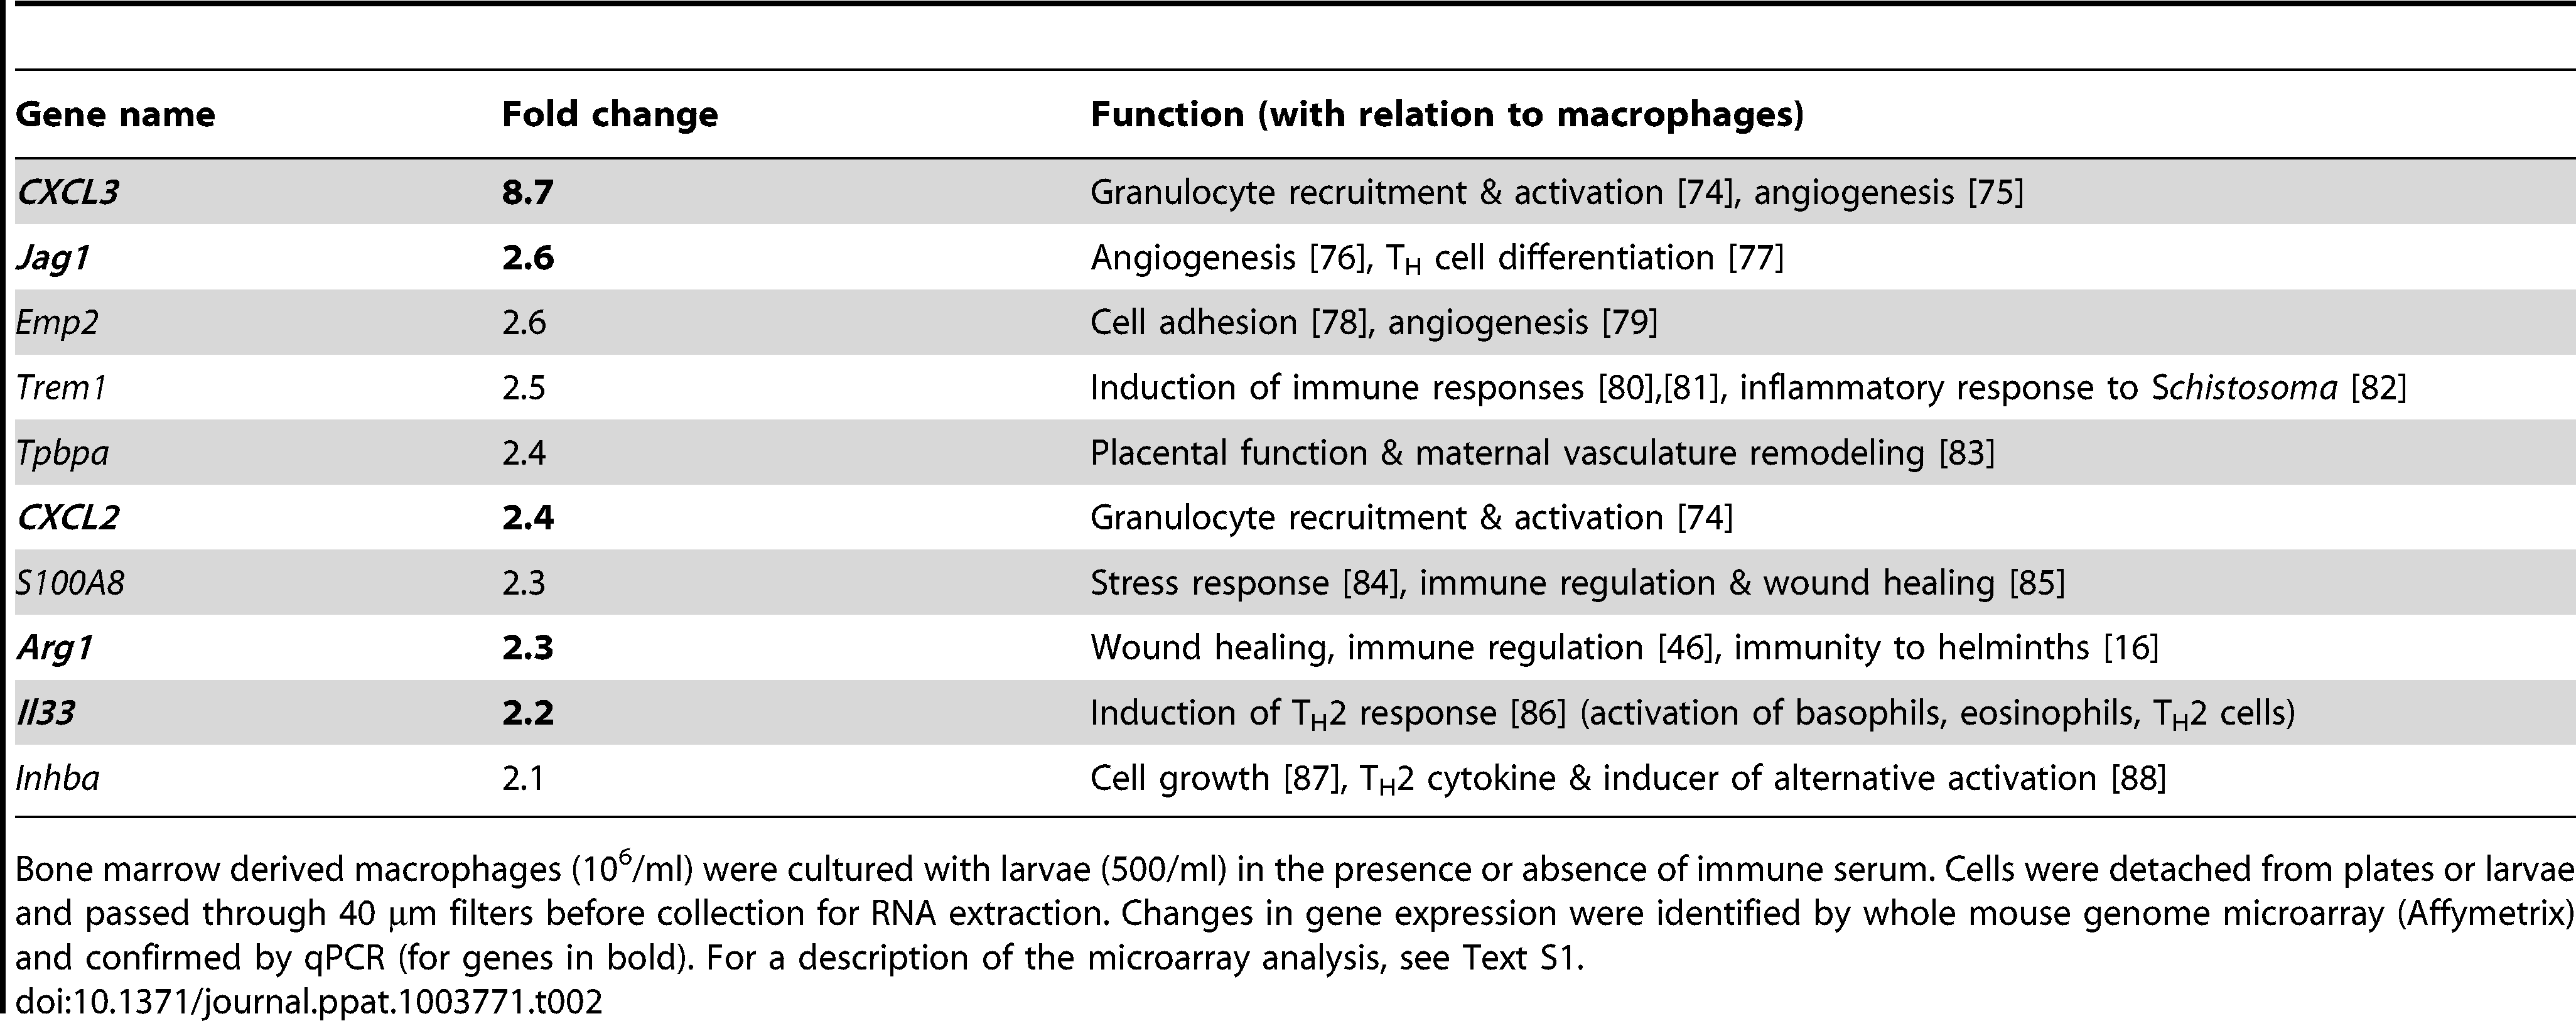 Fold induction and function of the 10 most upregulated genes in macrophages co-cultured with immune serum in combination with larvae as compared to larvae alone.